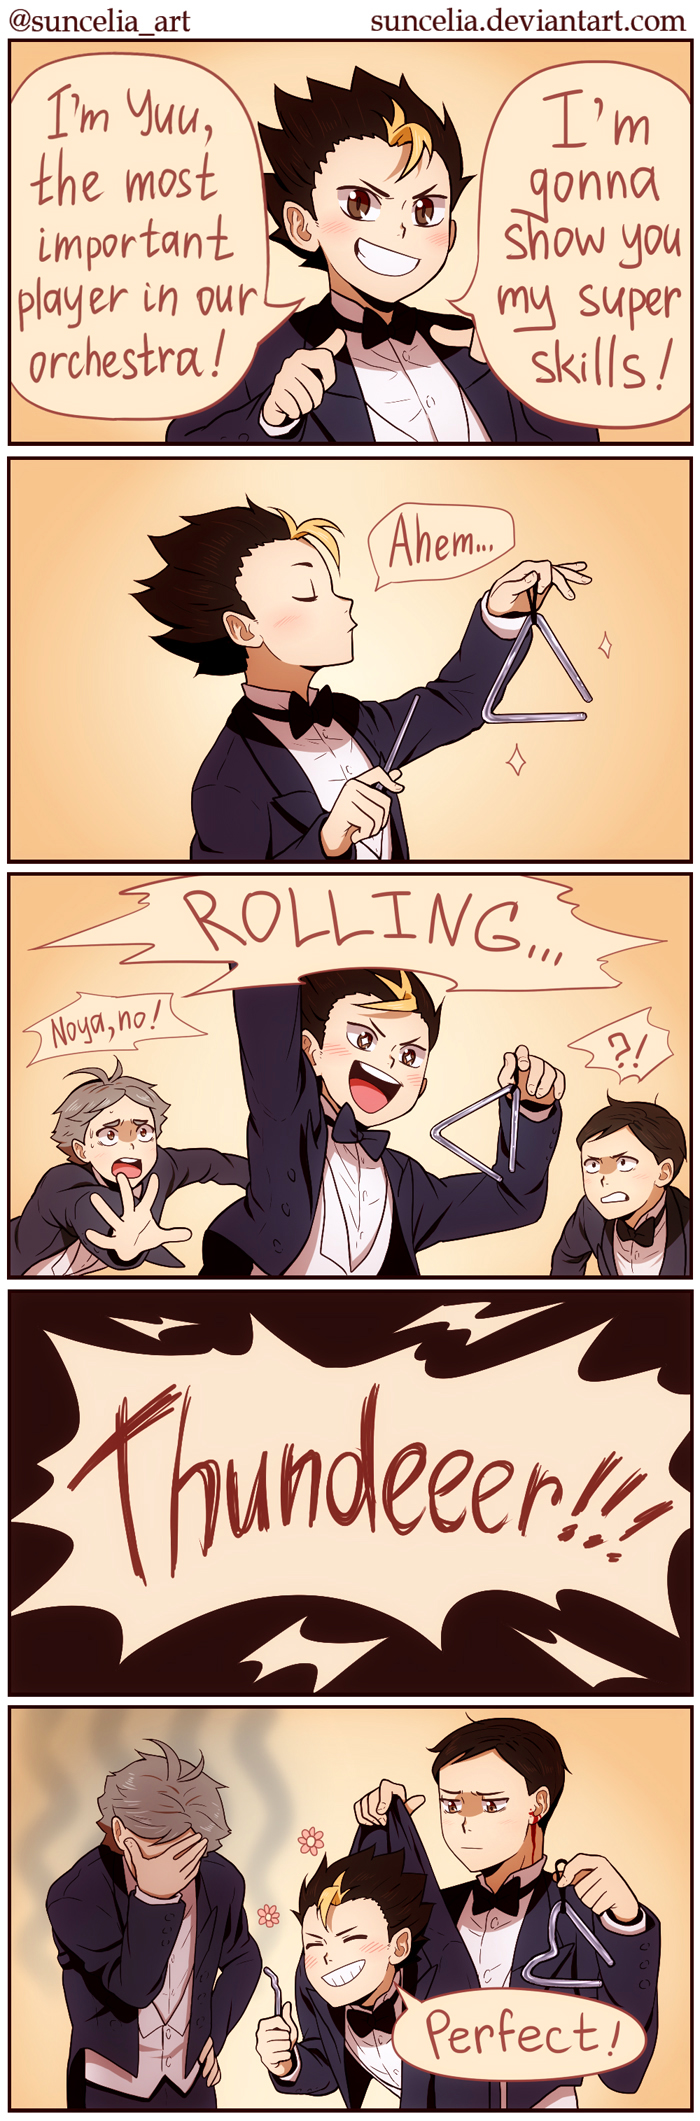 Haikyuu!! Orchestra AU: The Most Important Player by Suncelia